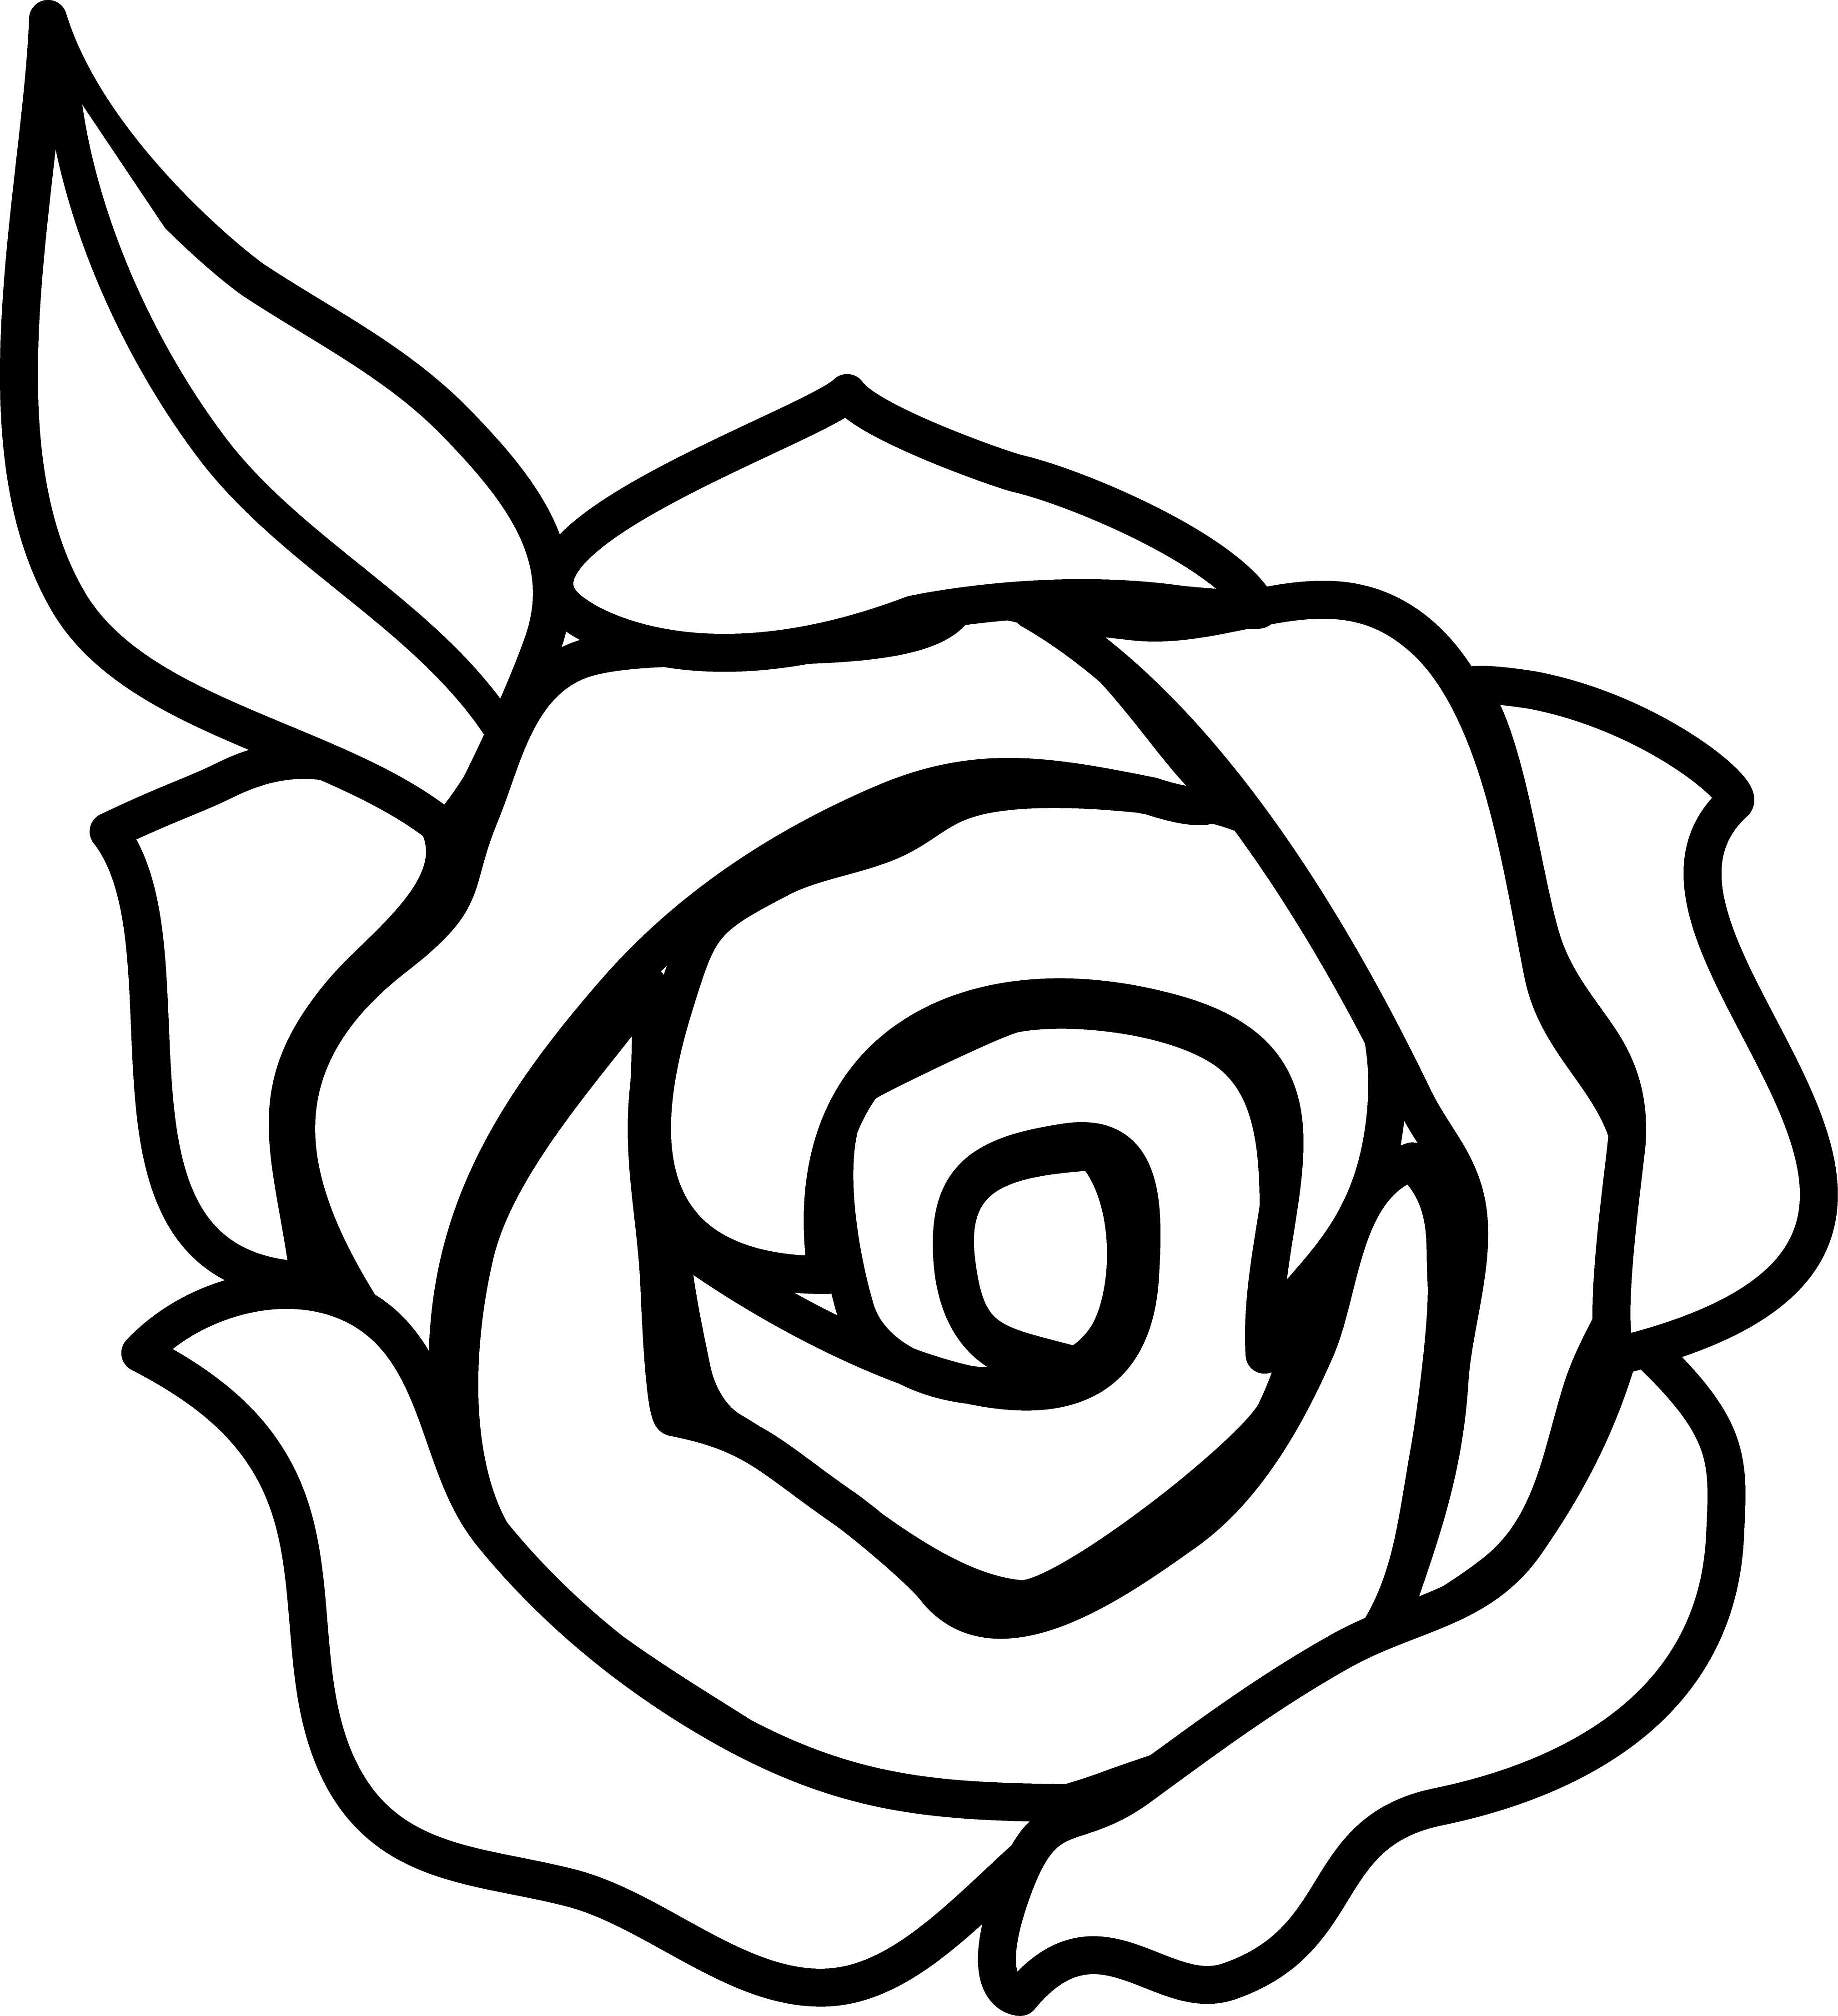 Rose Clip Art Black And White